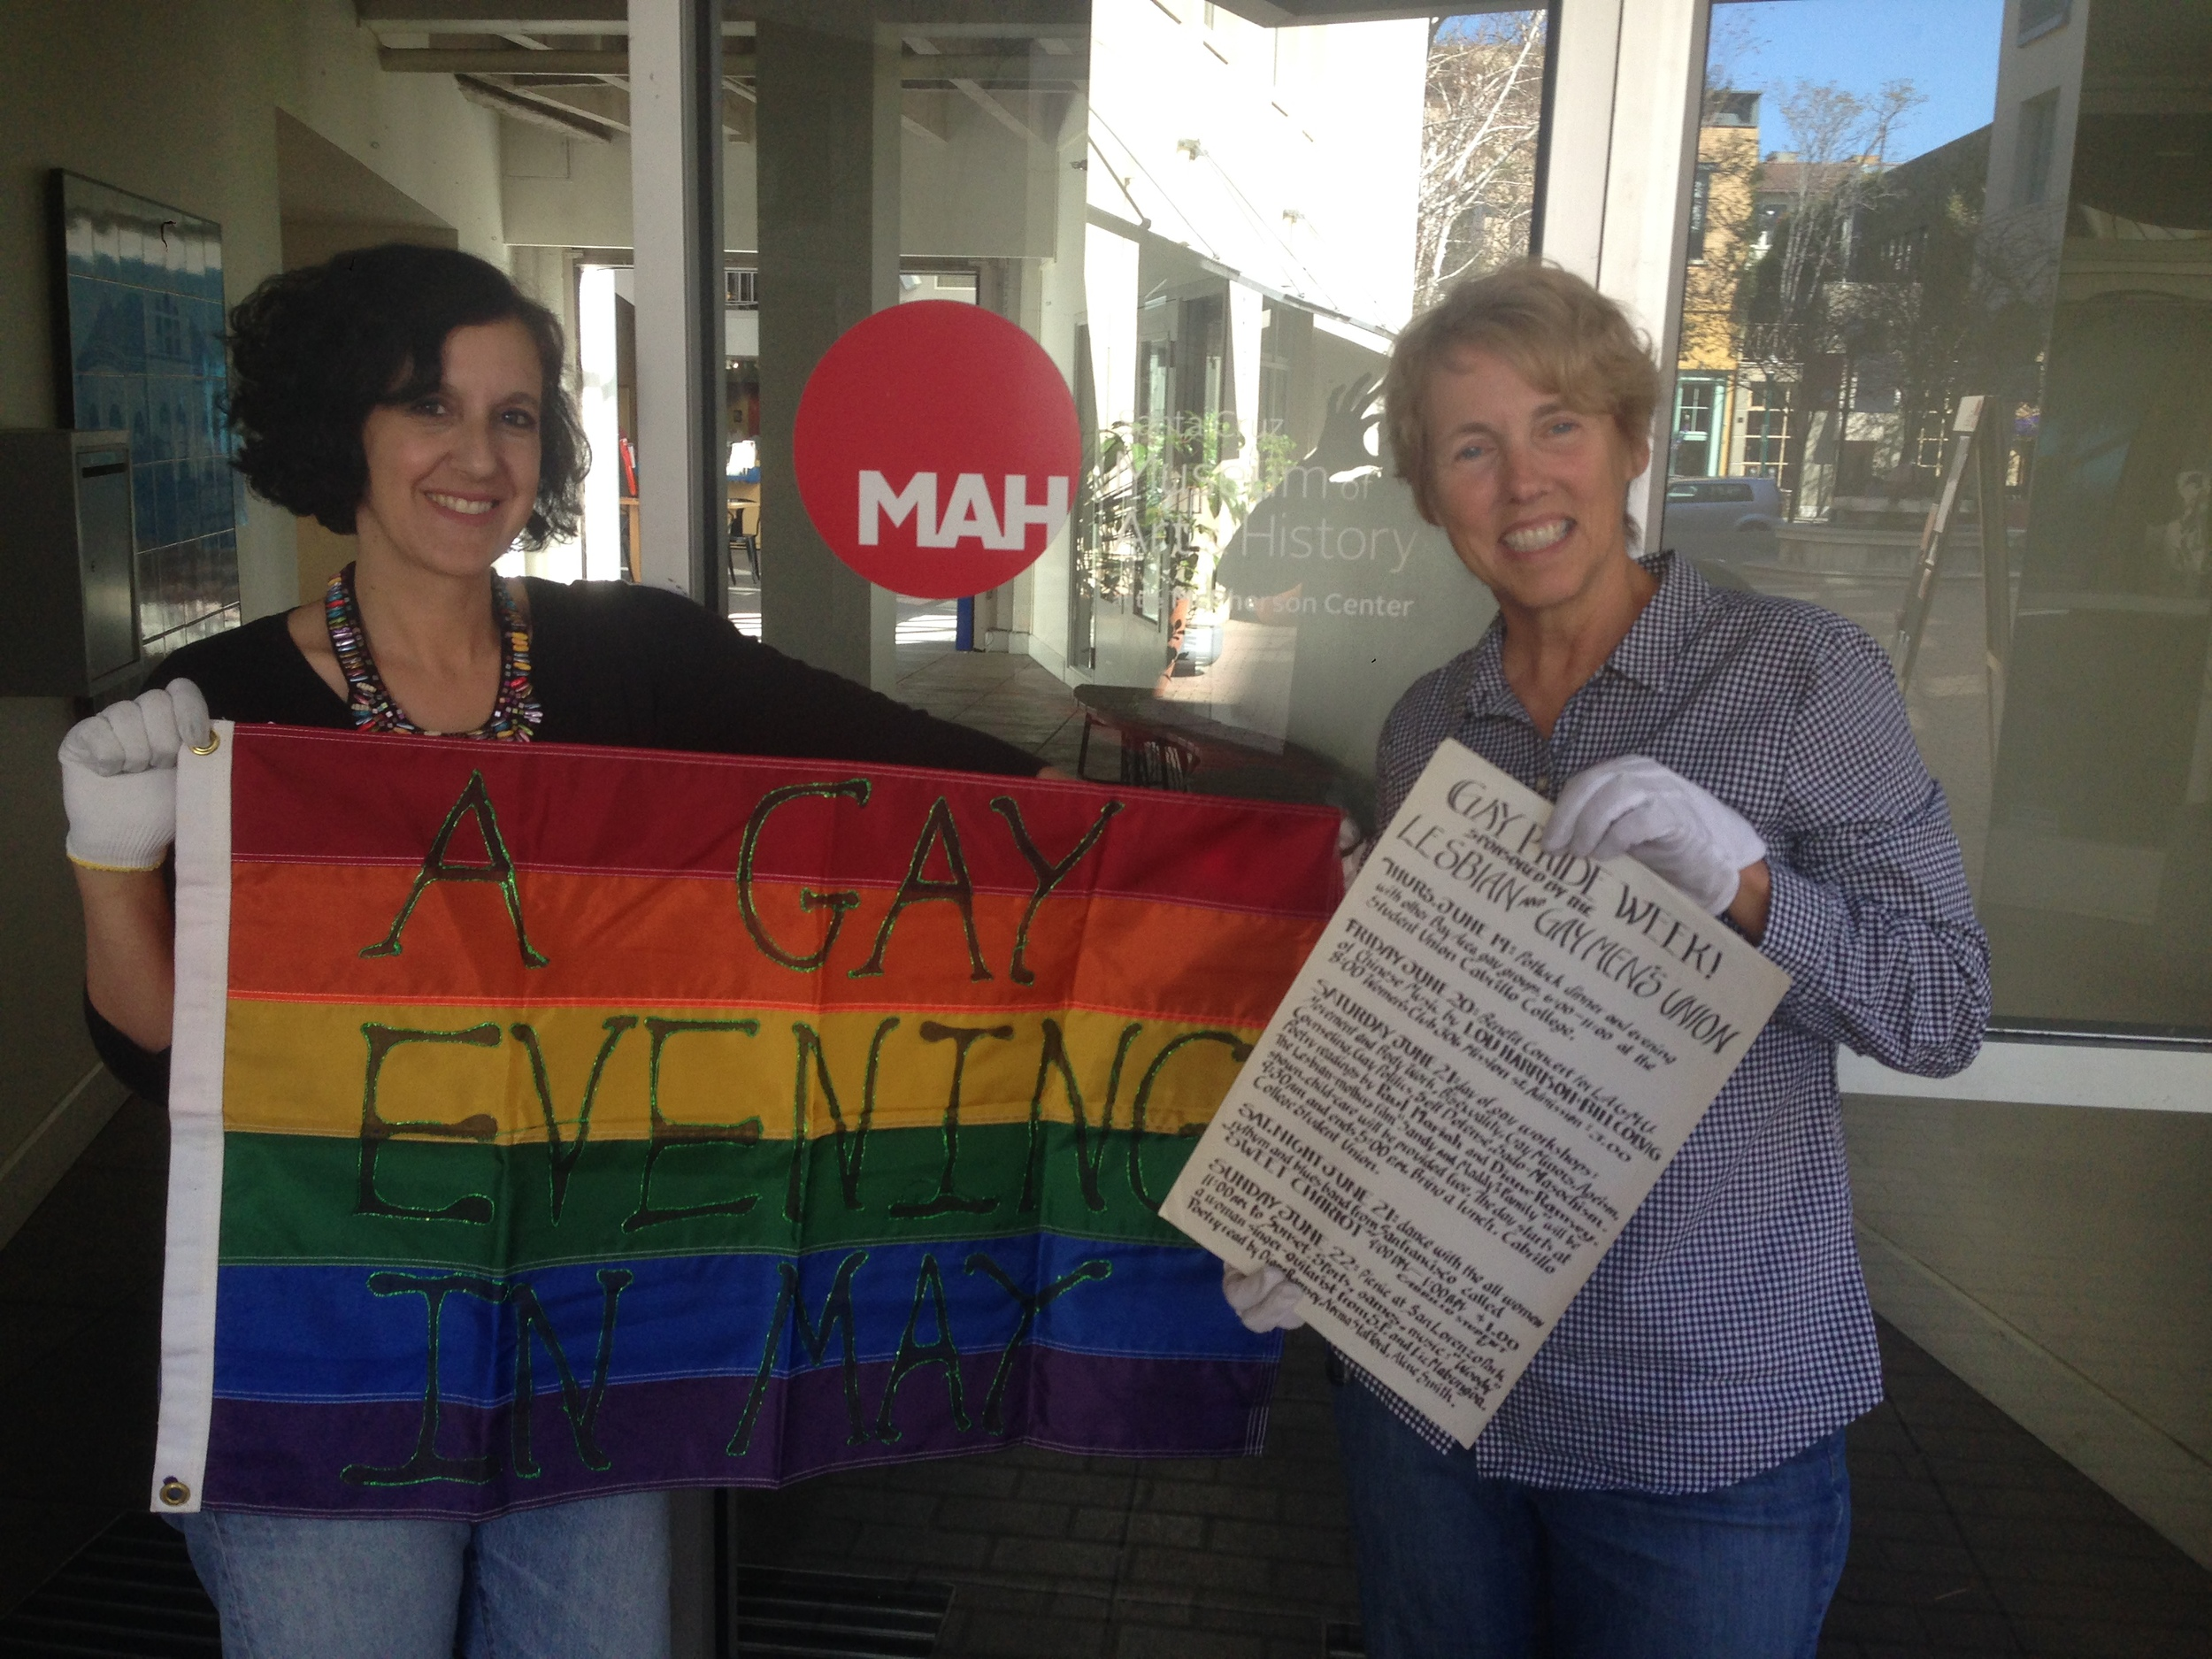 The MAH's Curator of Collections, Marla Novo, holds a flag for A Gay Evening in May (AGEM) in the 1980s and Diversity Center Board member, Pat Dellin, holds an original flyer from the first Santa Cruz Pride in 1975, part of the new LGBTQ archives at the MAH.